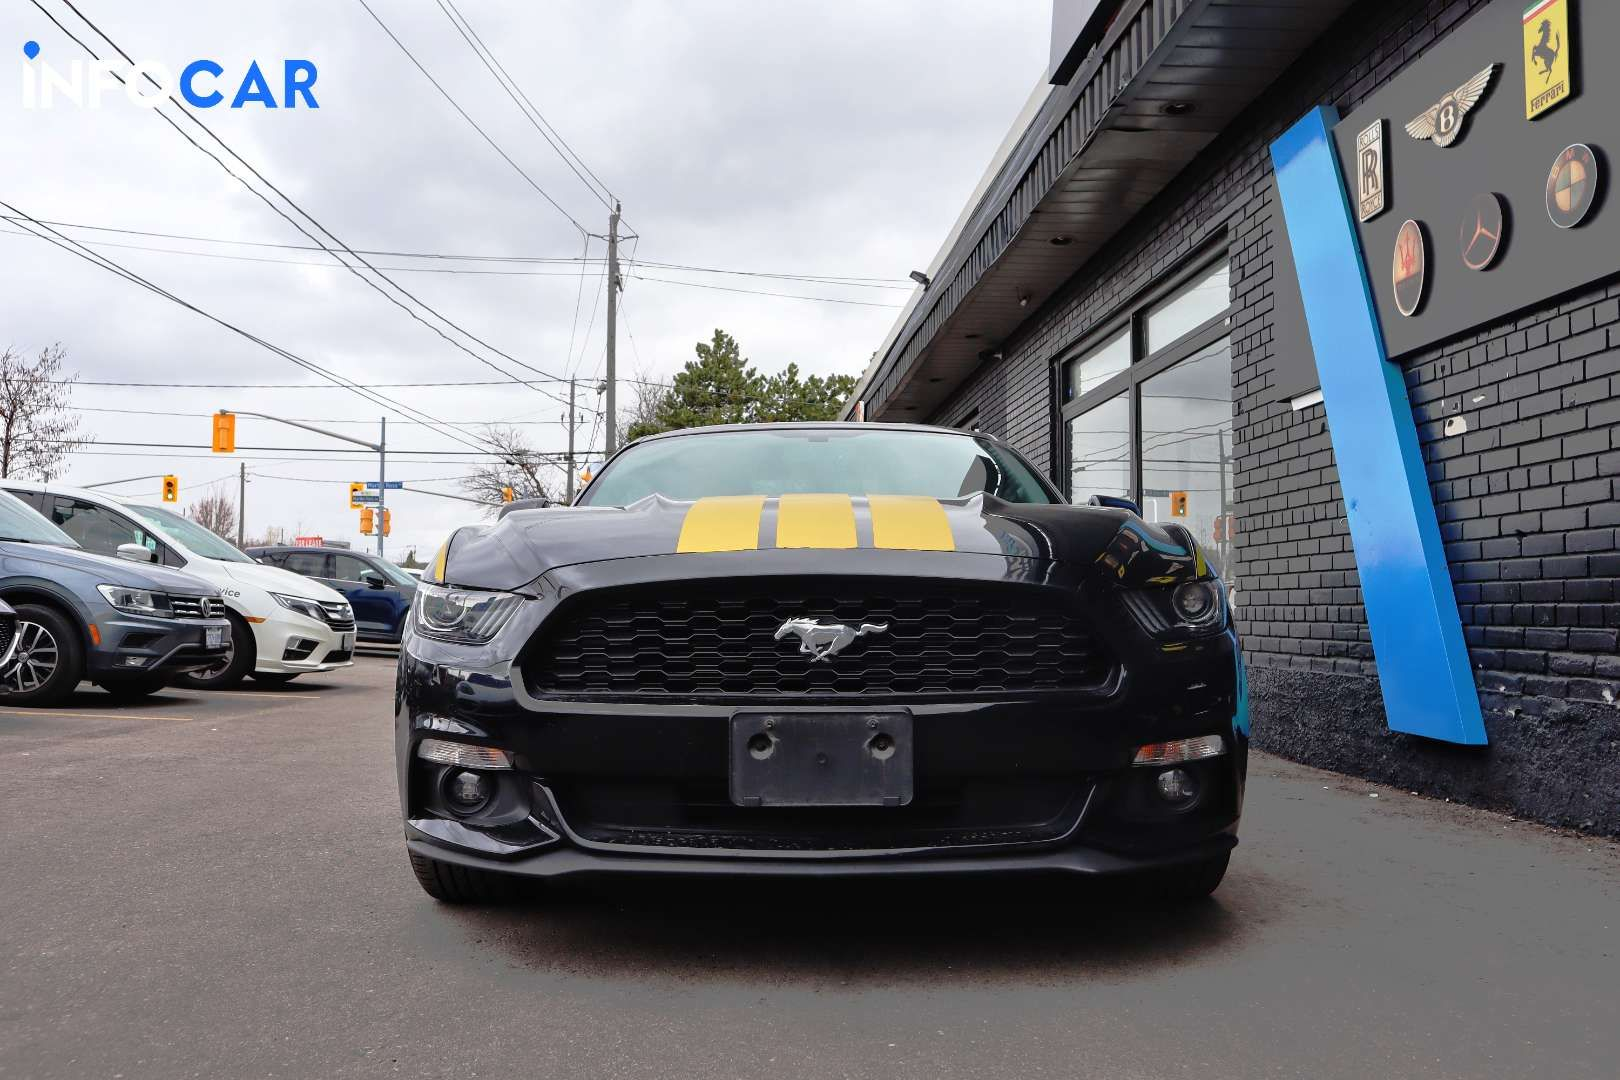 2017 Ford Mustang ECOBOOST - INFOCAR - Toronto's Most Comprehensive New and Used Auto Trading Platform